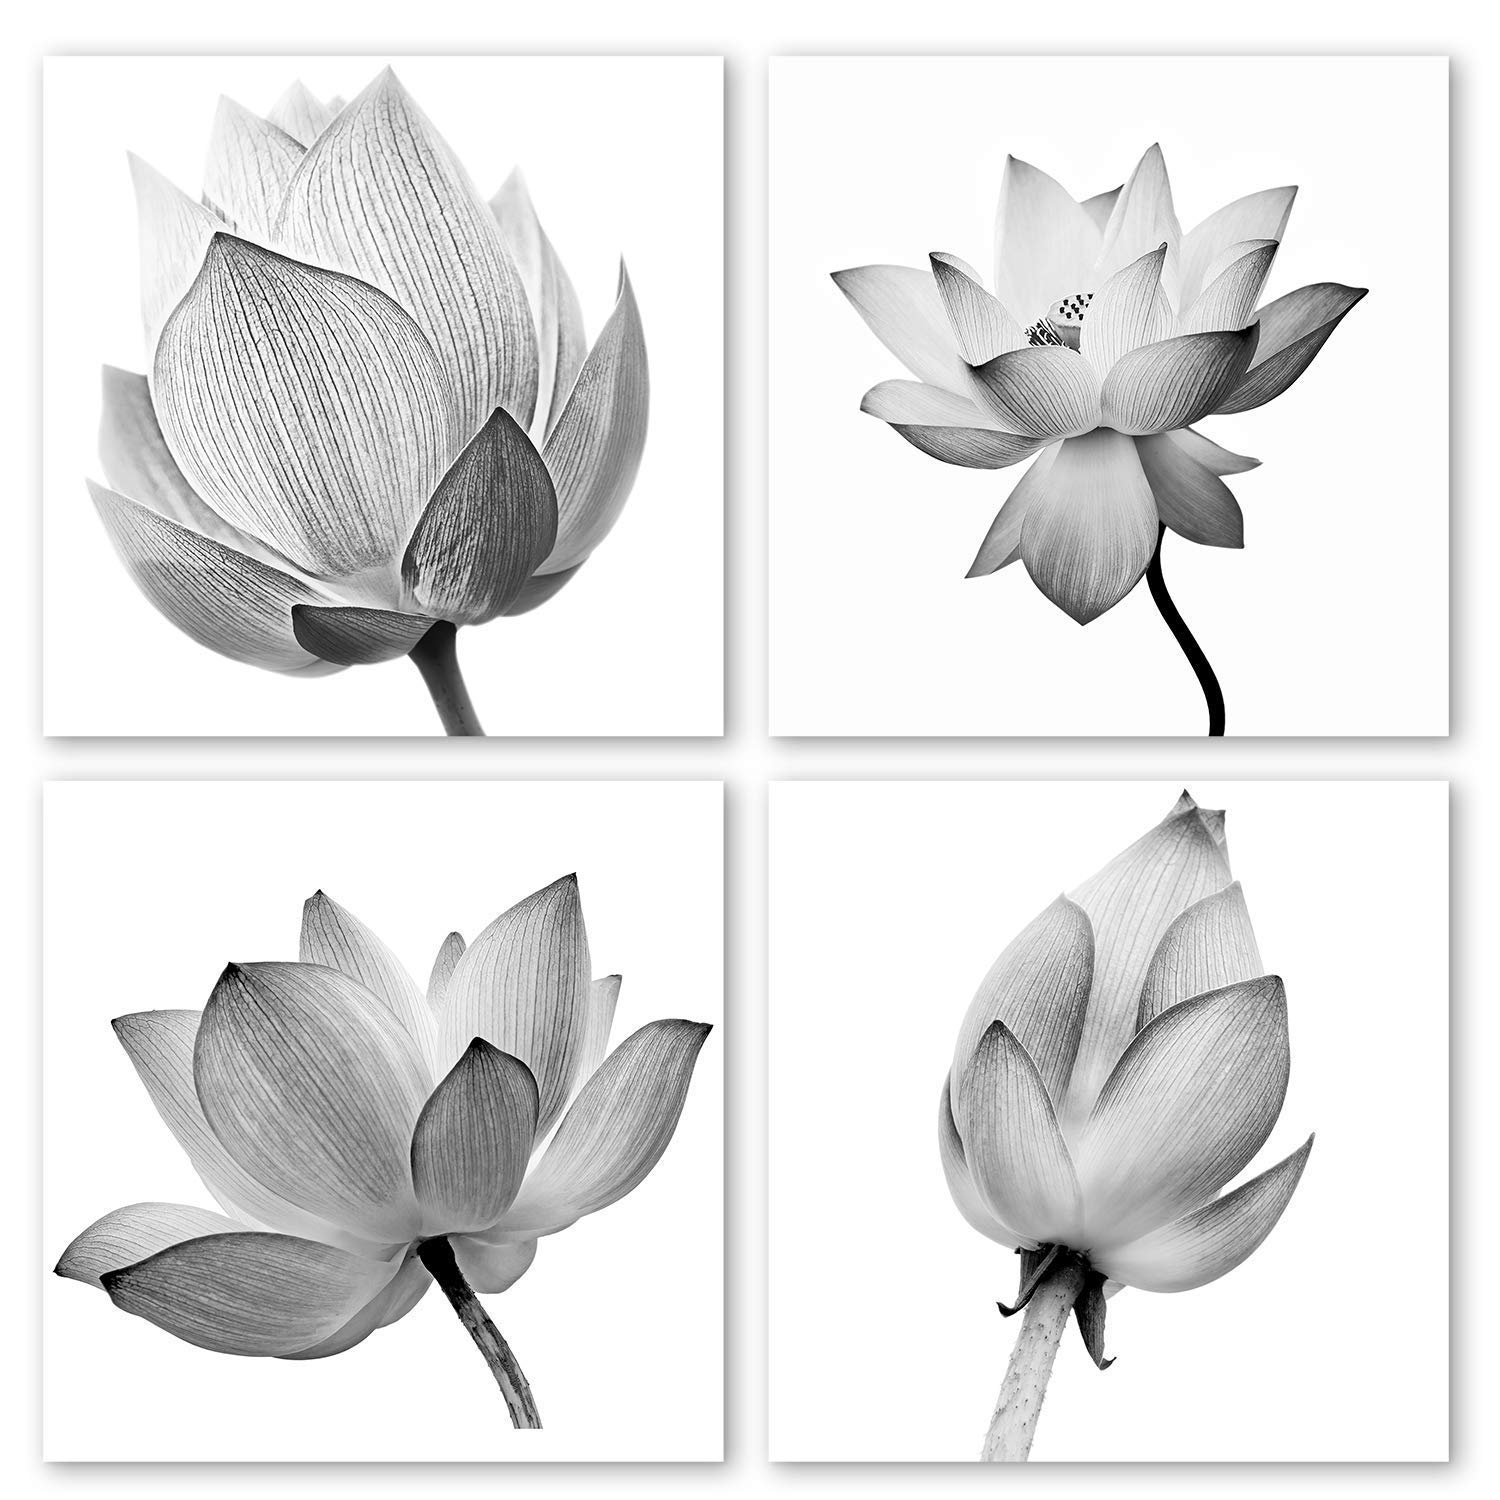 Vvovv wall decor 4 panels flowers artwork black and white elegant floral canvas art print blooming lotus picture framed water lily wall art painting home